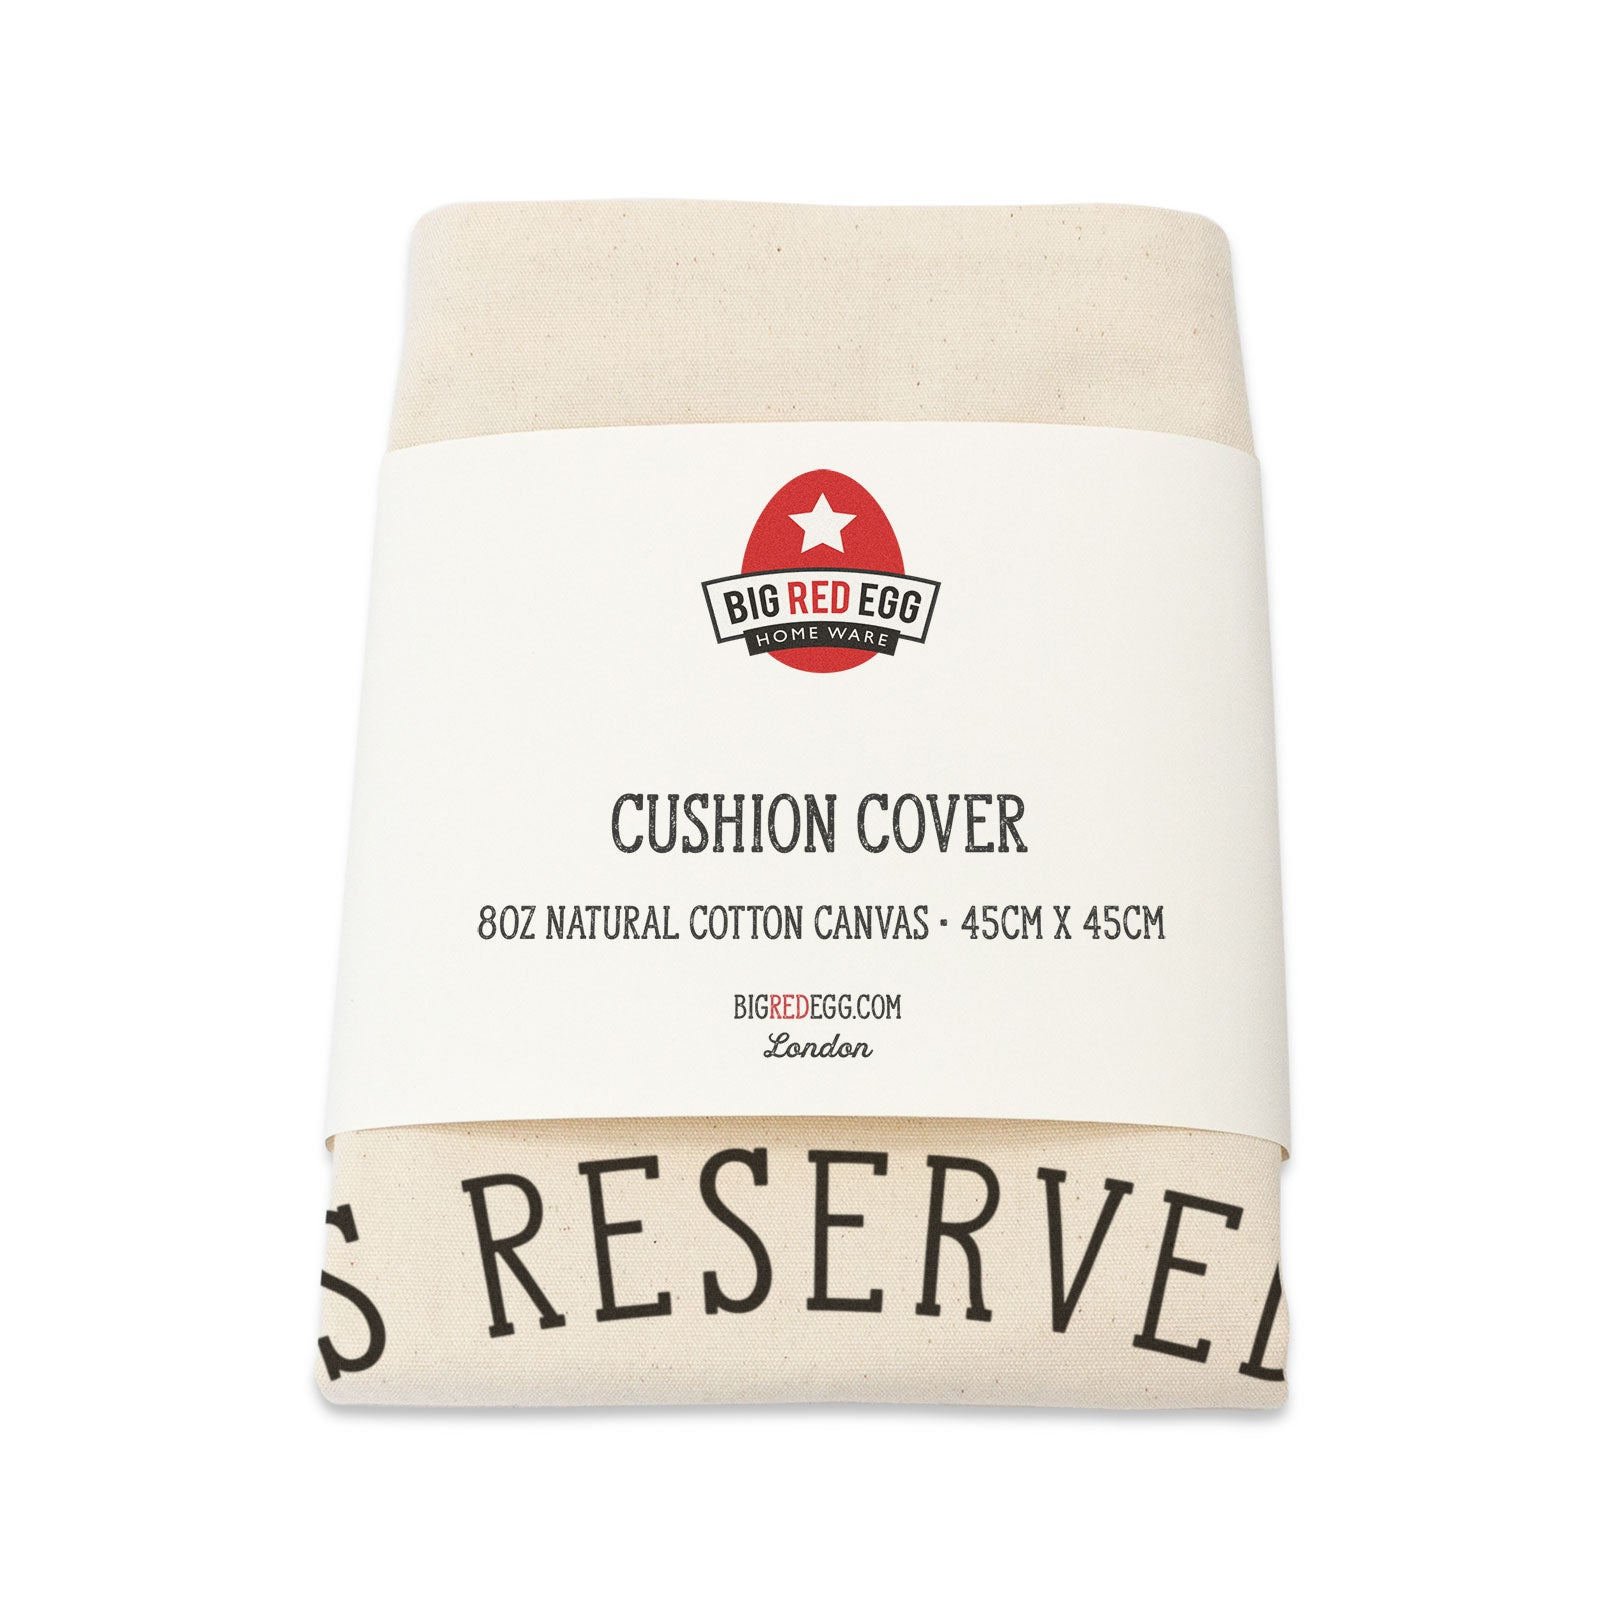 Reserved for the Cavachon Cushion Cover